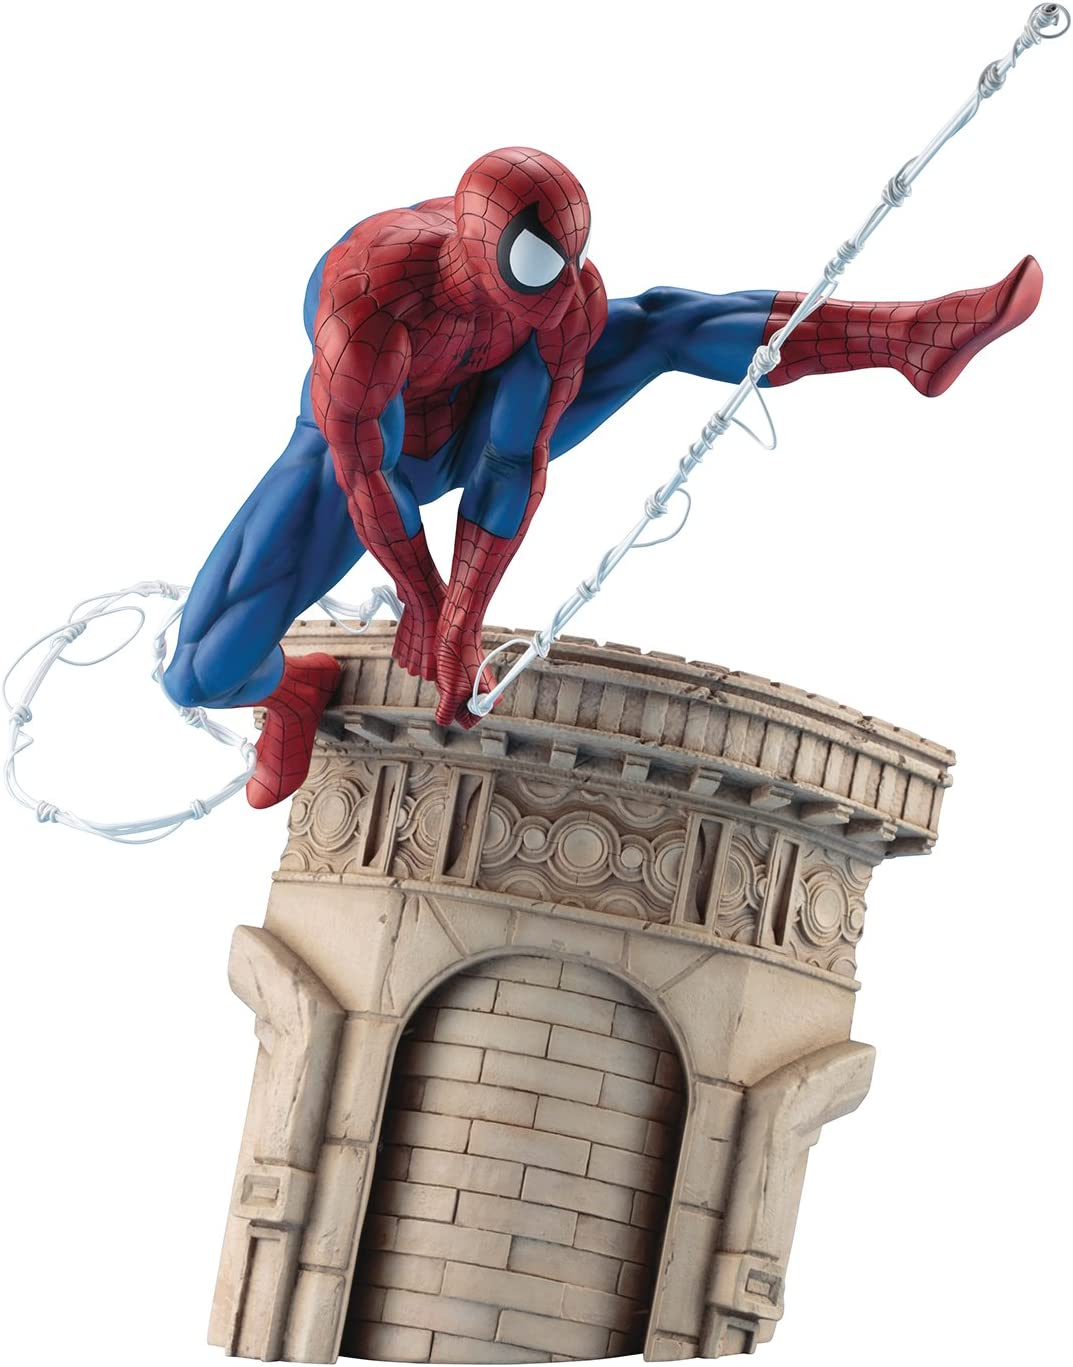 Kotobukiya Marvel Universe Spider-Man Webslinger Artfx Statue Collectible Figure